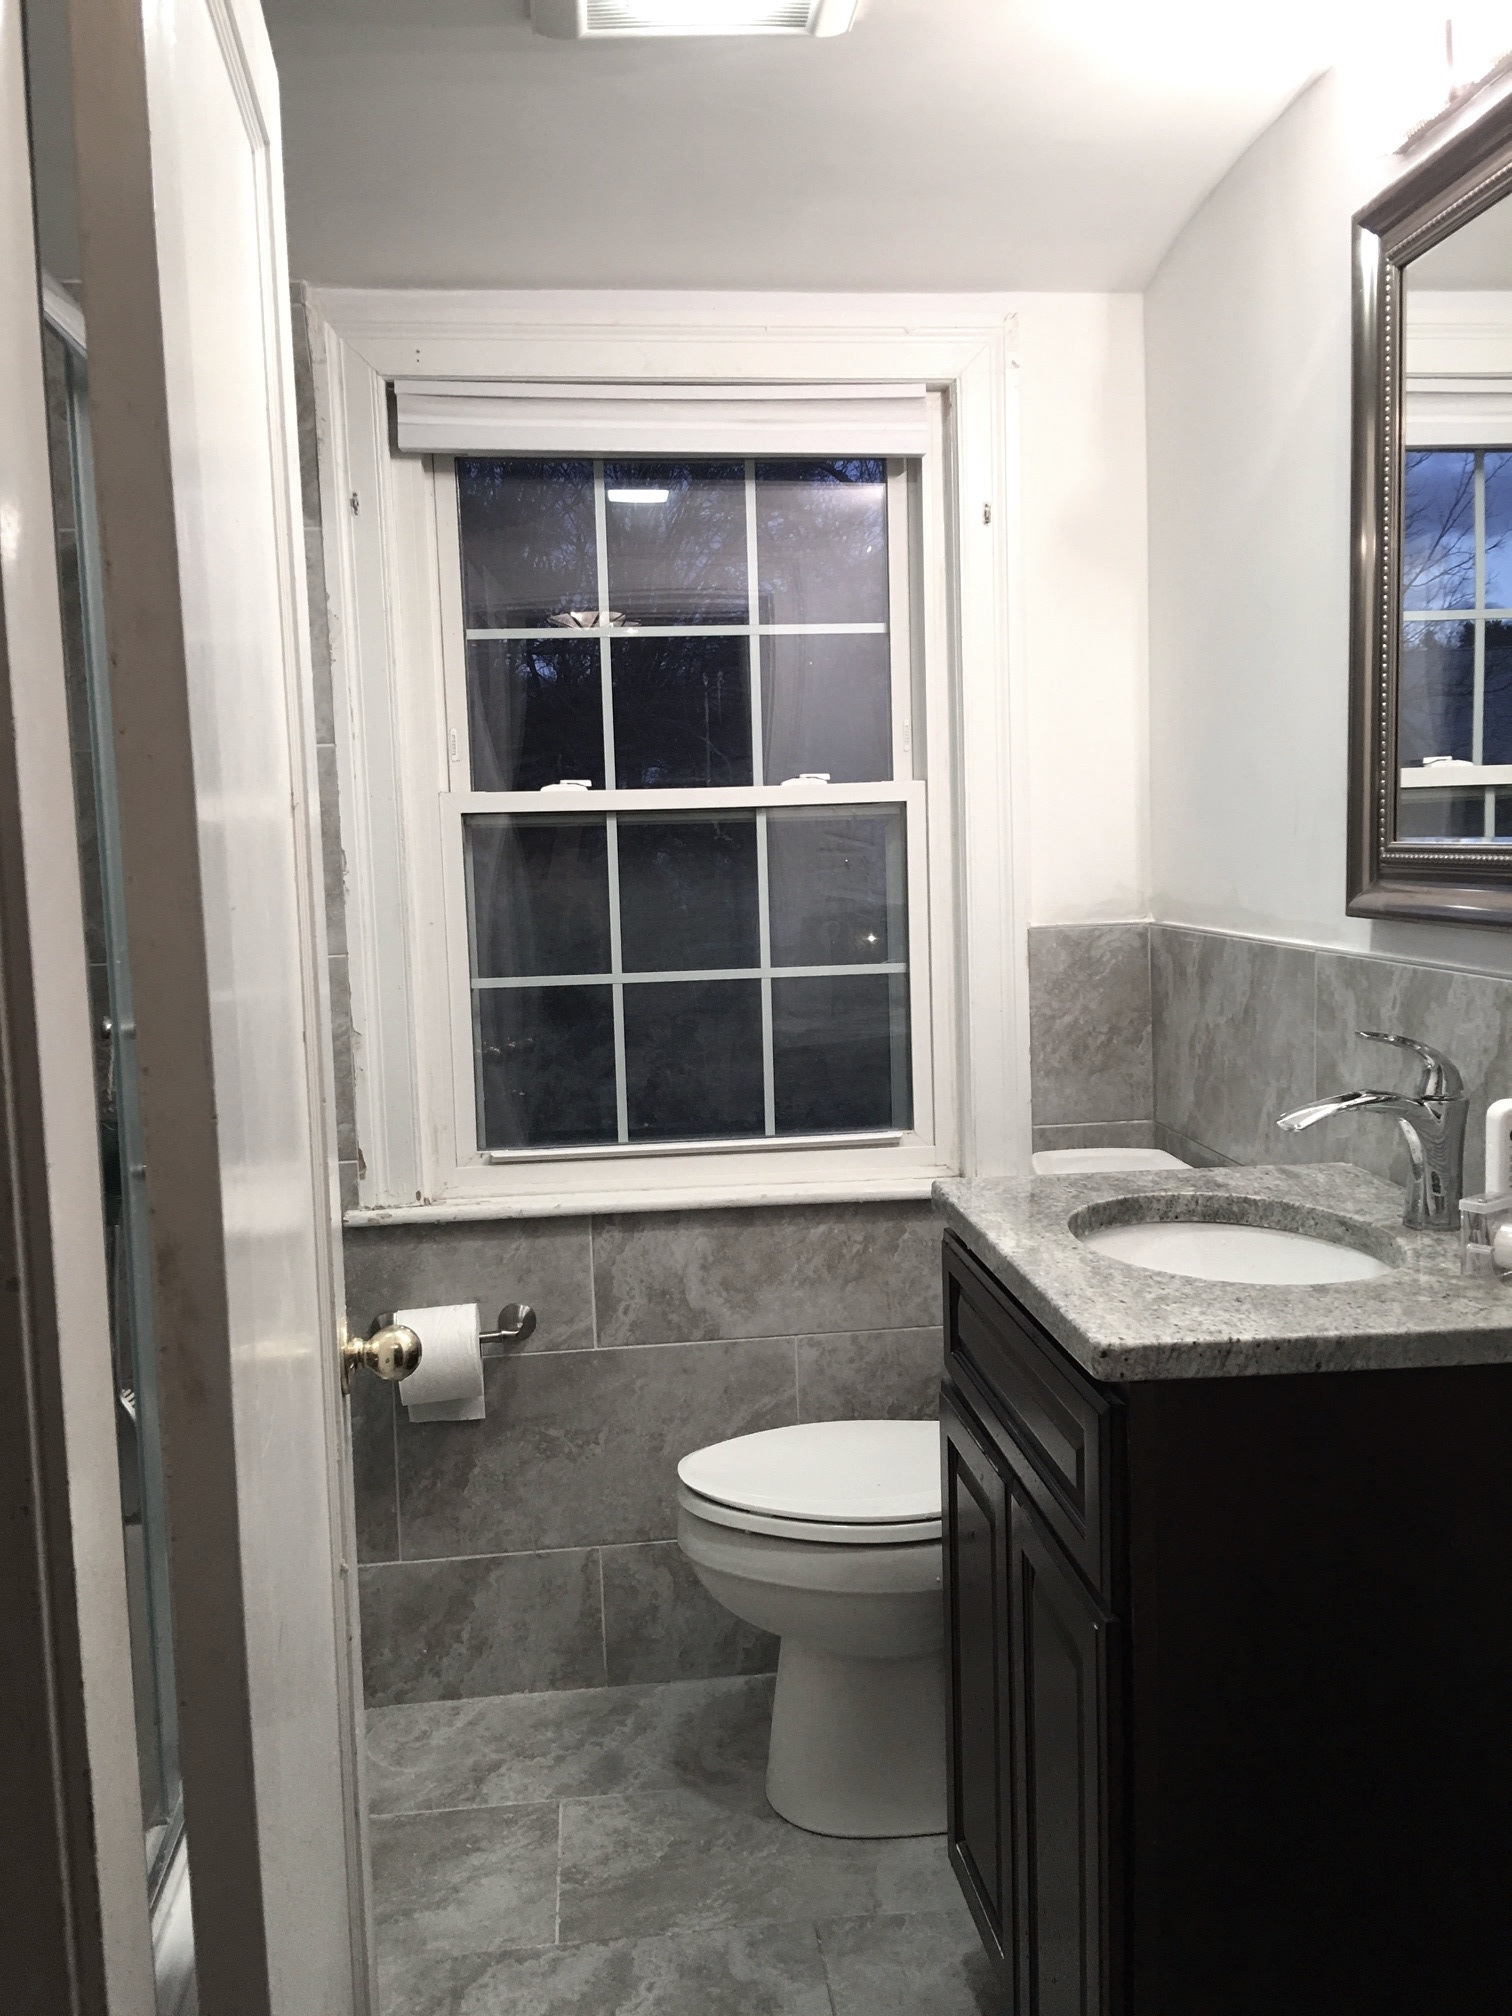 Beautiful Variety Of Grey Shades In Belmont, MA Bathroom, Double Niches  With Glass Tile Accents, Larger Tile Are Taking Eyes Out Off Narrow Room.